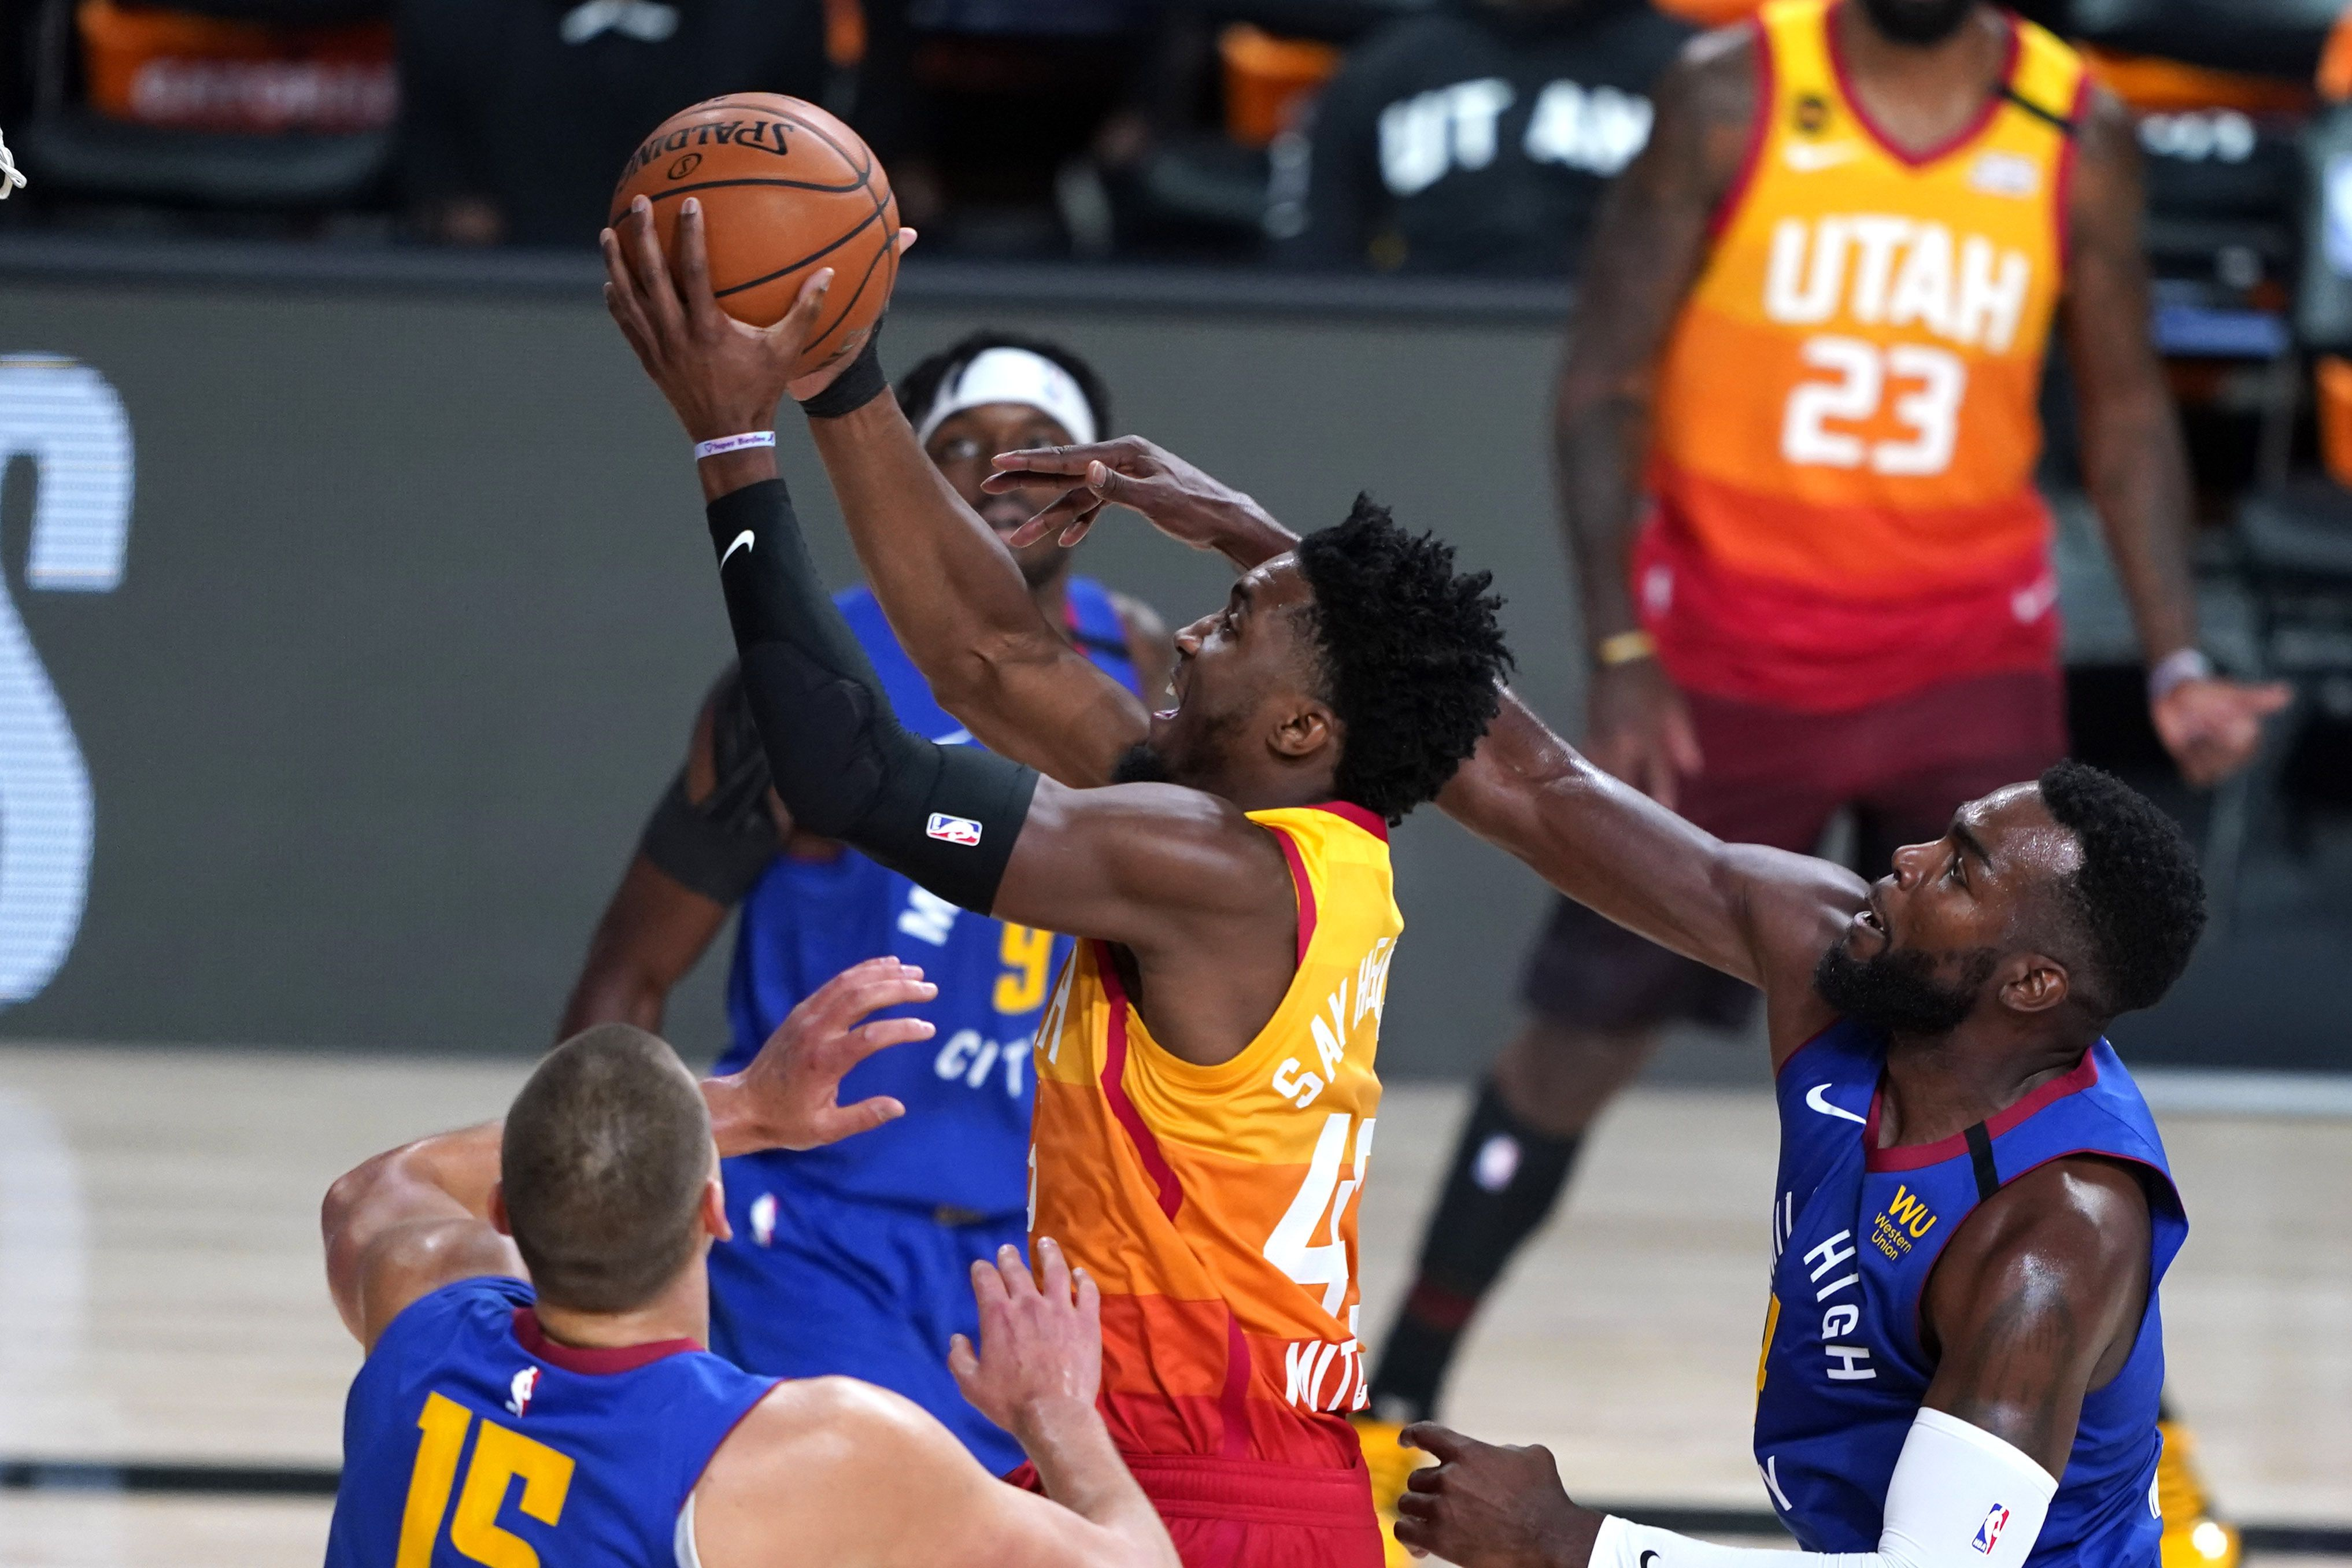 Utah Jazz's Donovan Mitchell (45) goes up for a shot as Denver Nuggets' Paul Millsap (4), right, defends during the first half of an NBA basketball first round playoff game Sunday, Aug. 23, 2020, in Lake Buena Vista, Fla. (AP Photo/Ashley Landis, Pool)